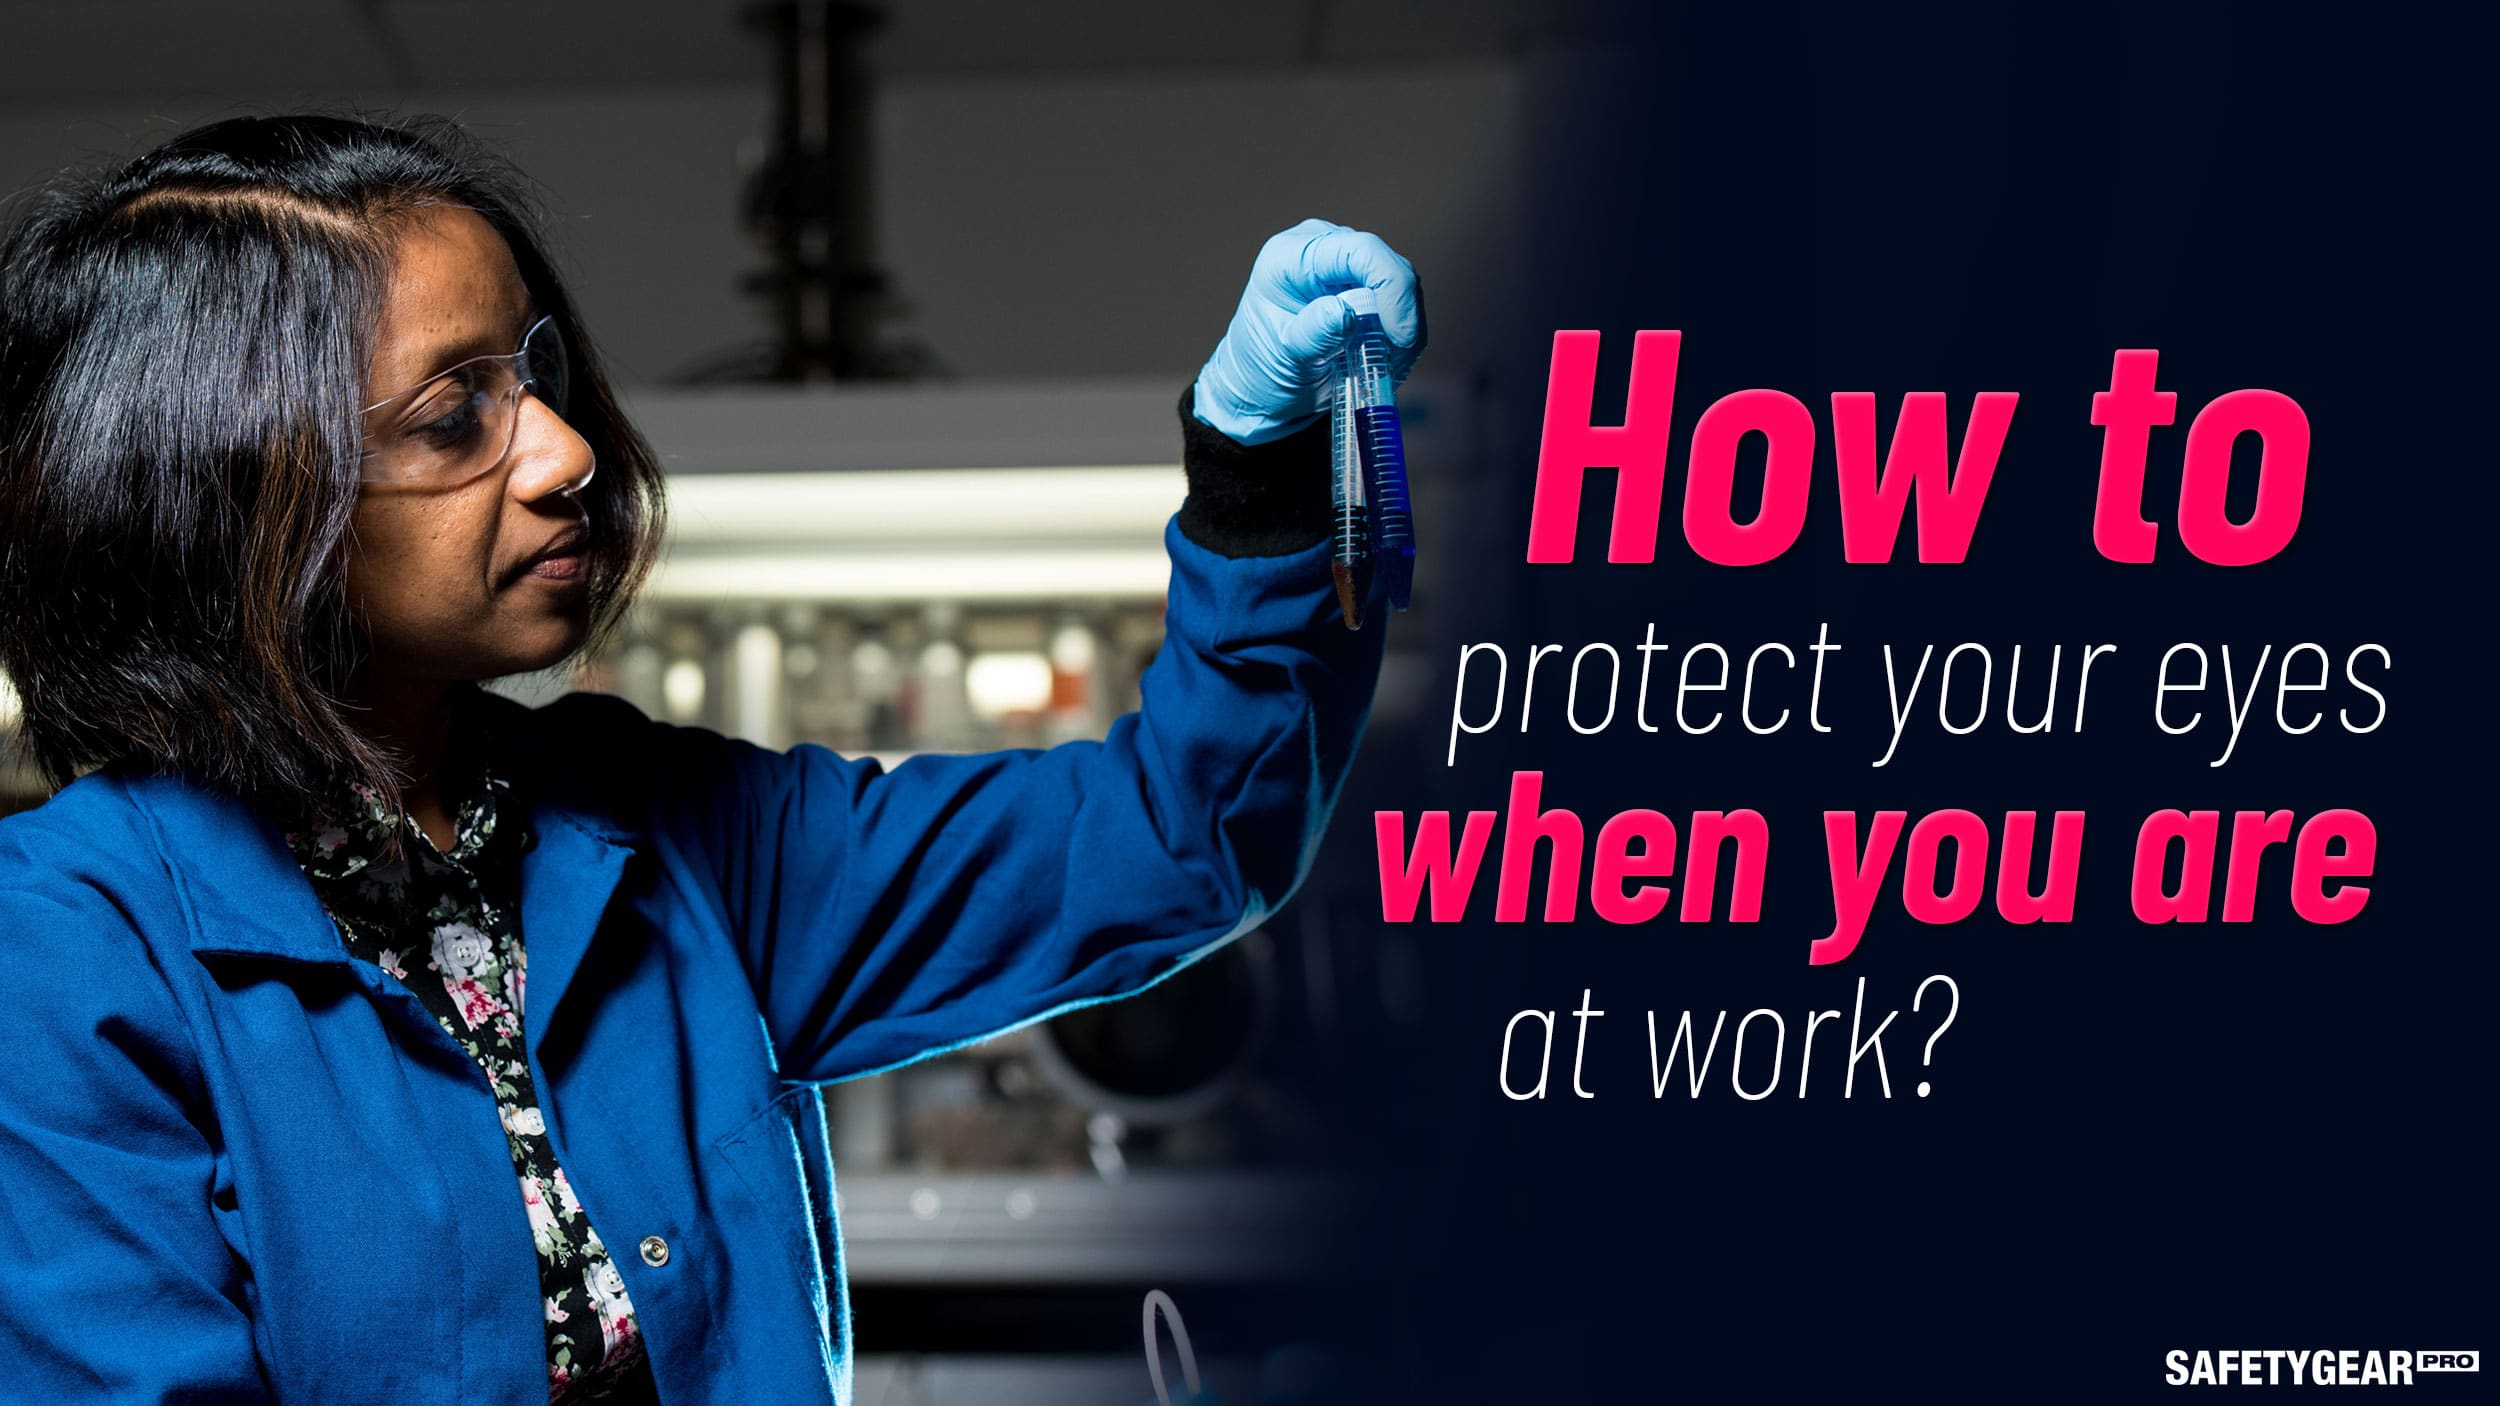 How to protect your eyes when you are at work